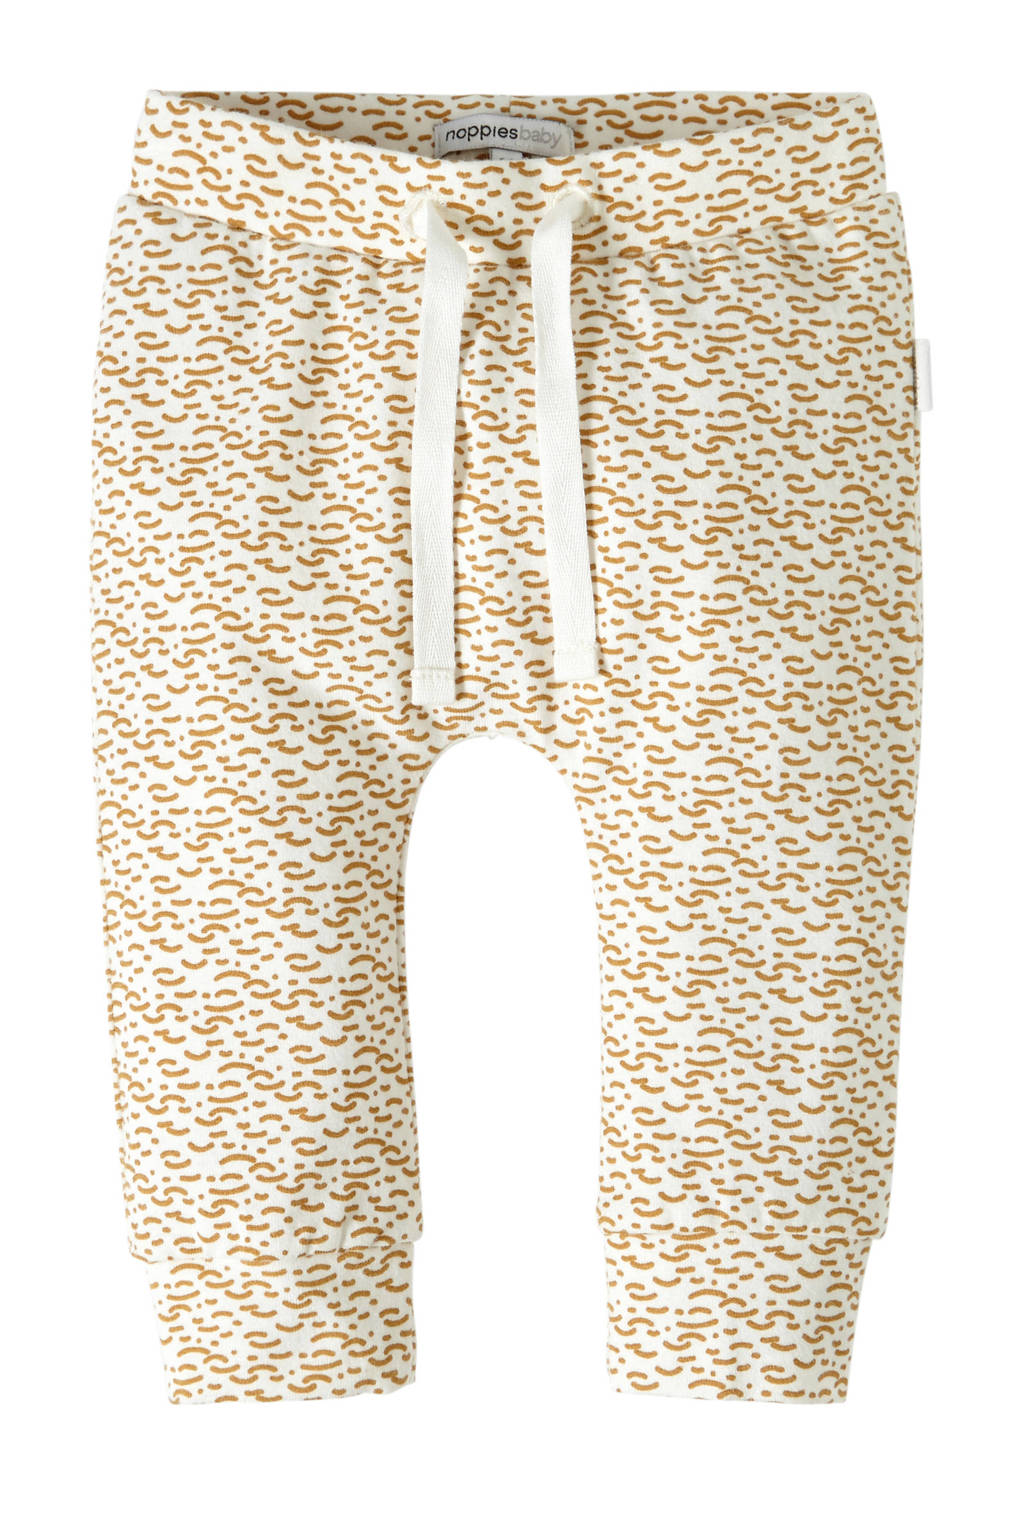 Noppies baby broek Penfield, Lichtbruin/ off white